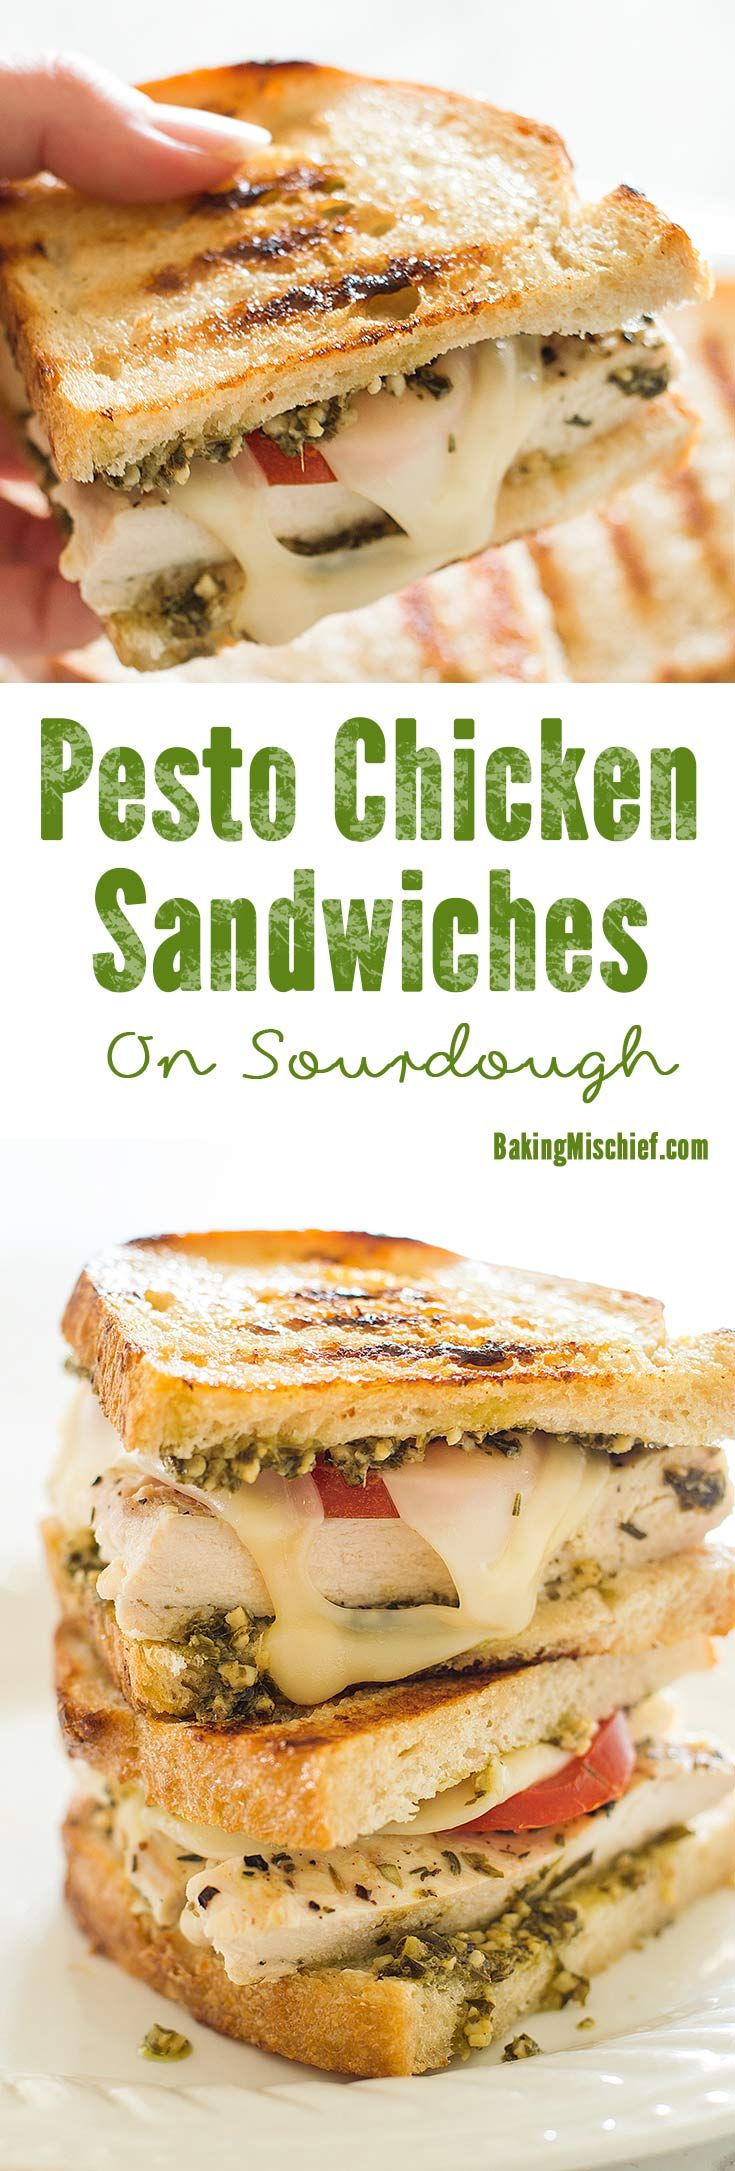 This Pesto Chicken Sandwich on Sourdough, toasted in olive oil and topped with grilled chicken, pesto, Swiss cheese, and fresh tomatoes is a perfect easy dinner. From BakingMischief.com